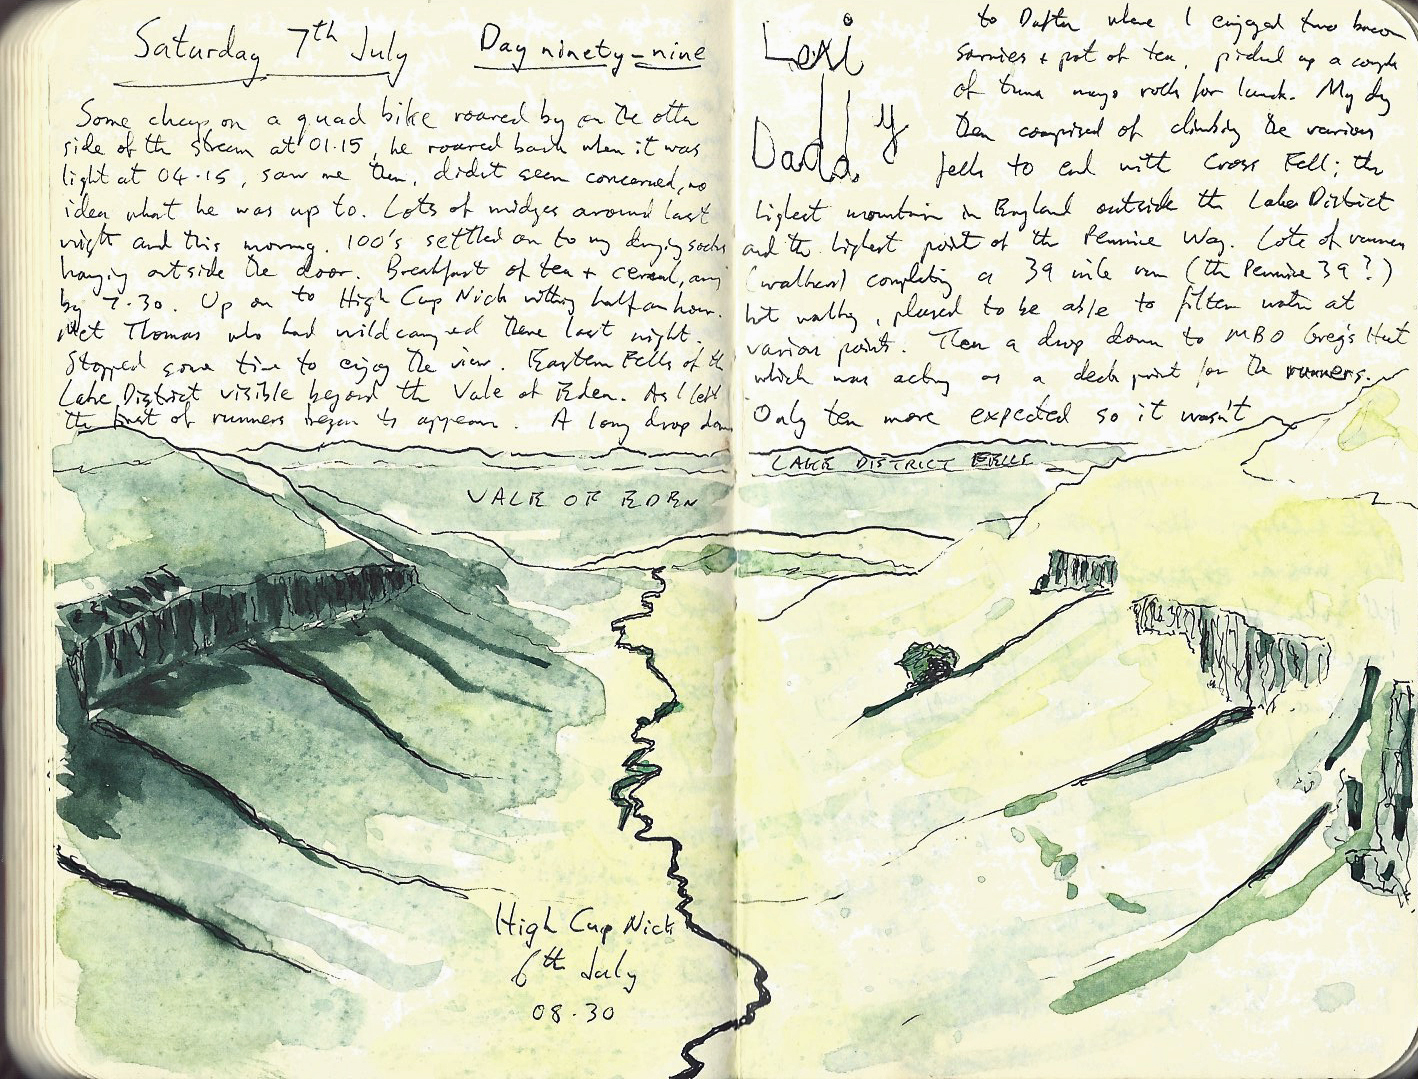 A notebook forms an important part of the contents of my ditty bag. A scrappy sketch of High Cup Nick on the Pennine Way in 2018 takes me back to the moment I made it, above, the carefully scrawled name of the little girl who spent that night in Gregs Hut with her father and me, reminds of Lexi's overwhelming excitement at toasting marshmallows that night